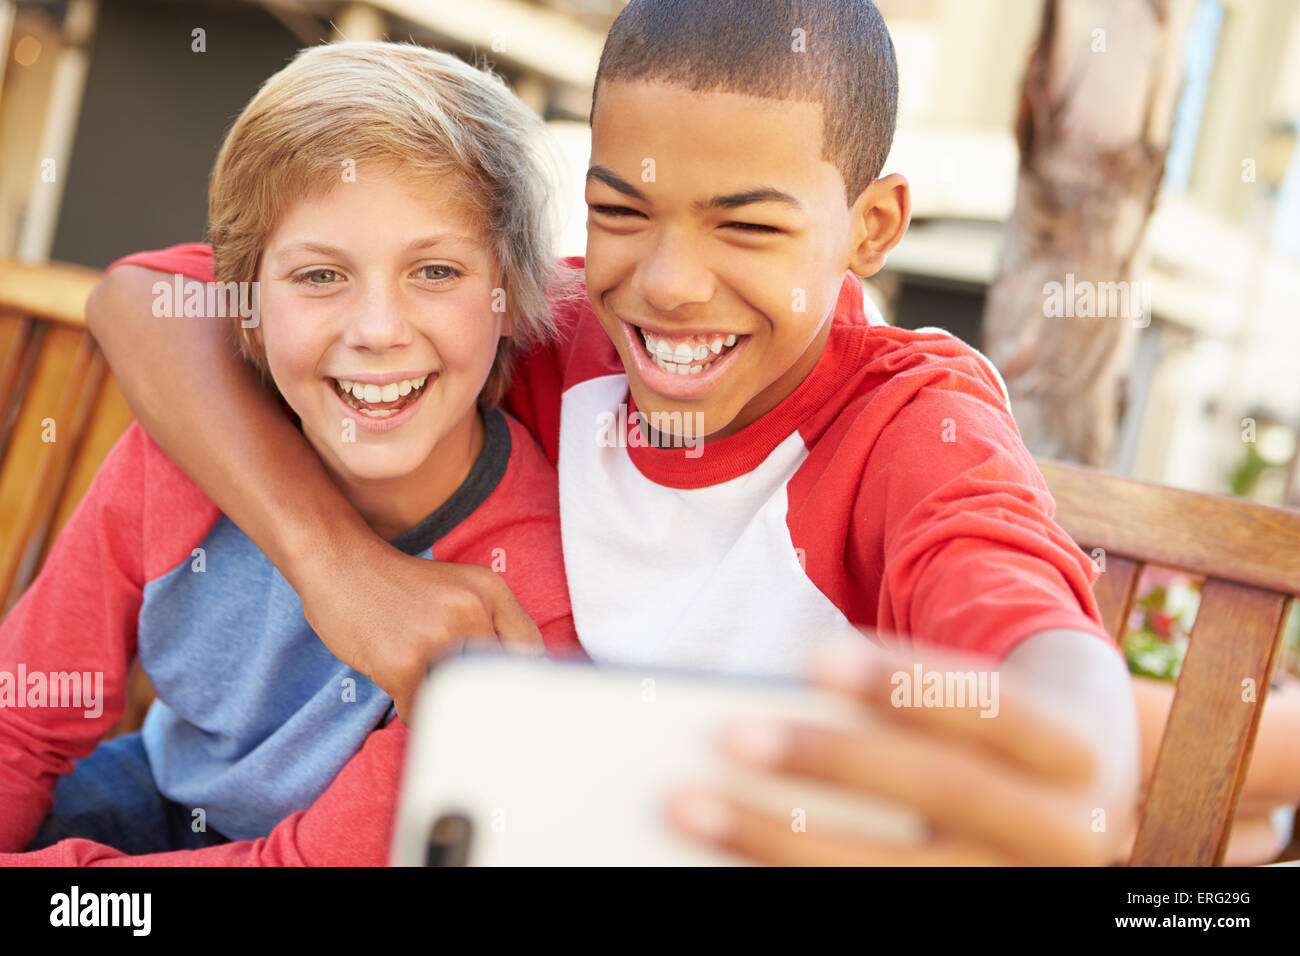 Two Boys Sitting On Bench In Mall Taking Selfie - Stock Image